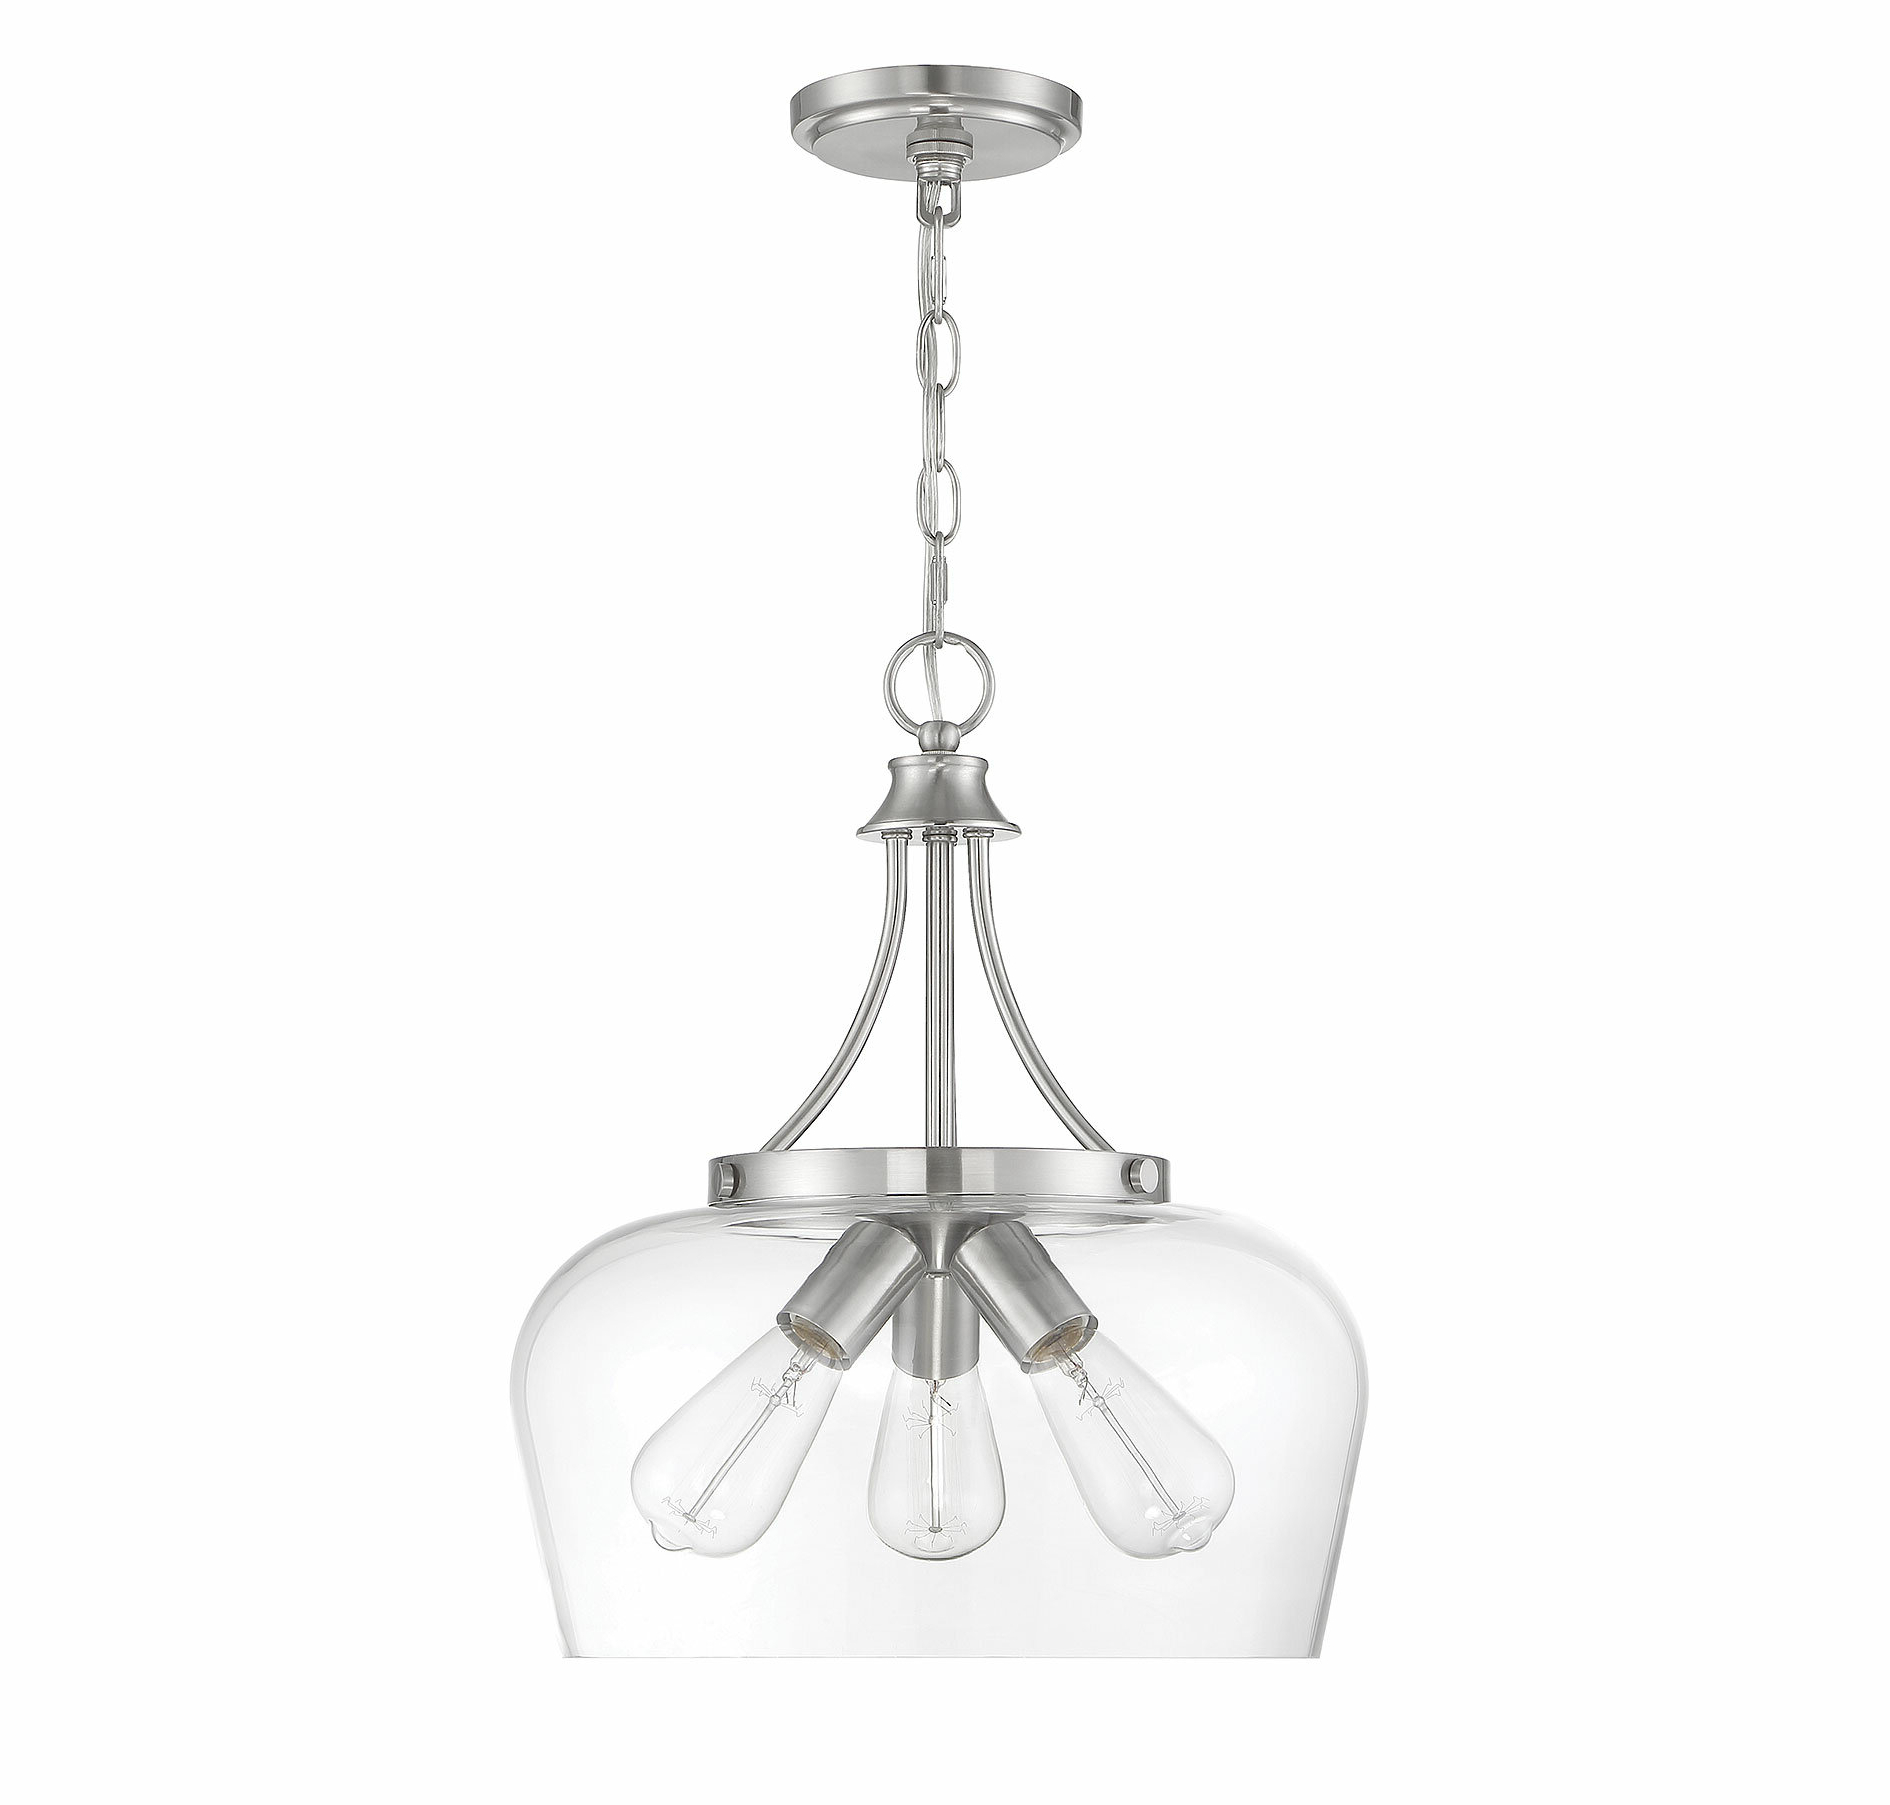 Kimsey 1 Light Teardrop Pendants Regarding Most Current Pewter & Silver & Satin Nickel Pendant Lighting You'll Love (View 7 of 20)